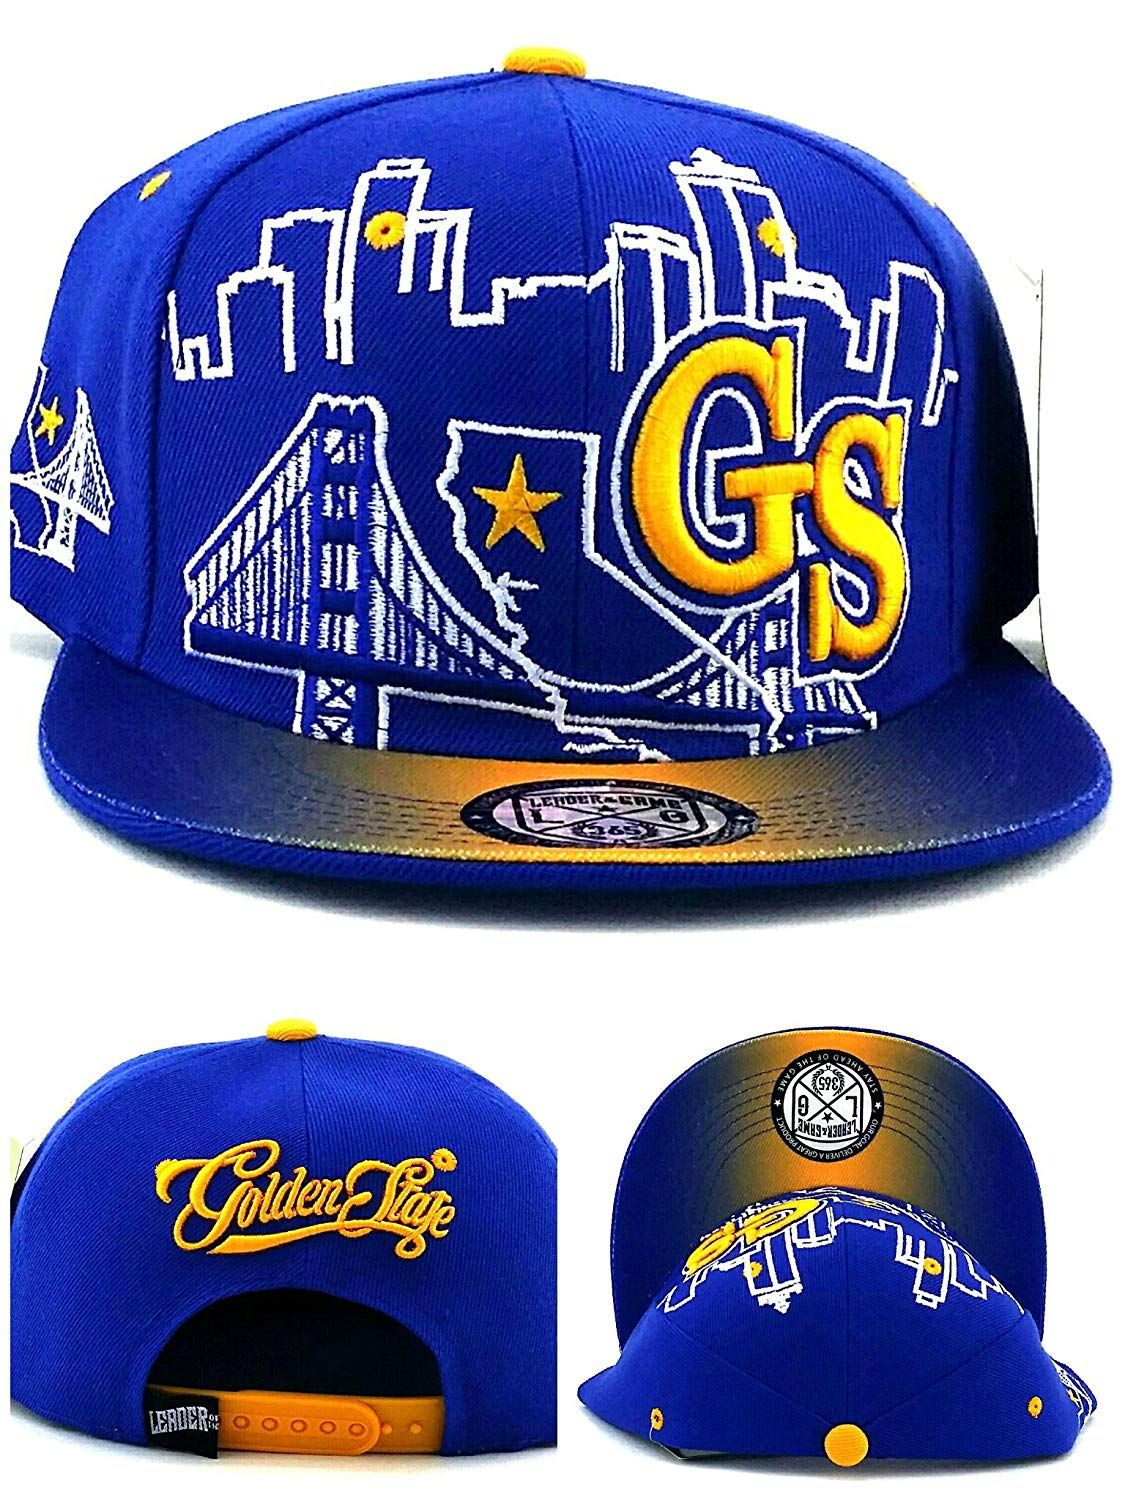 f9fb5849c65 Leader of the Game Golden State New GS Skyline 3 Bridge Warriors Colors  Blue Gold Era Snapback Hat